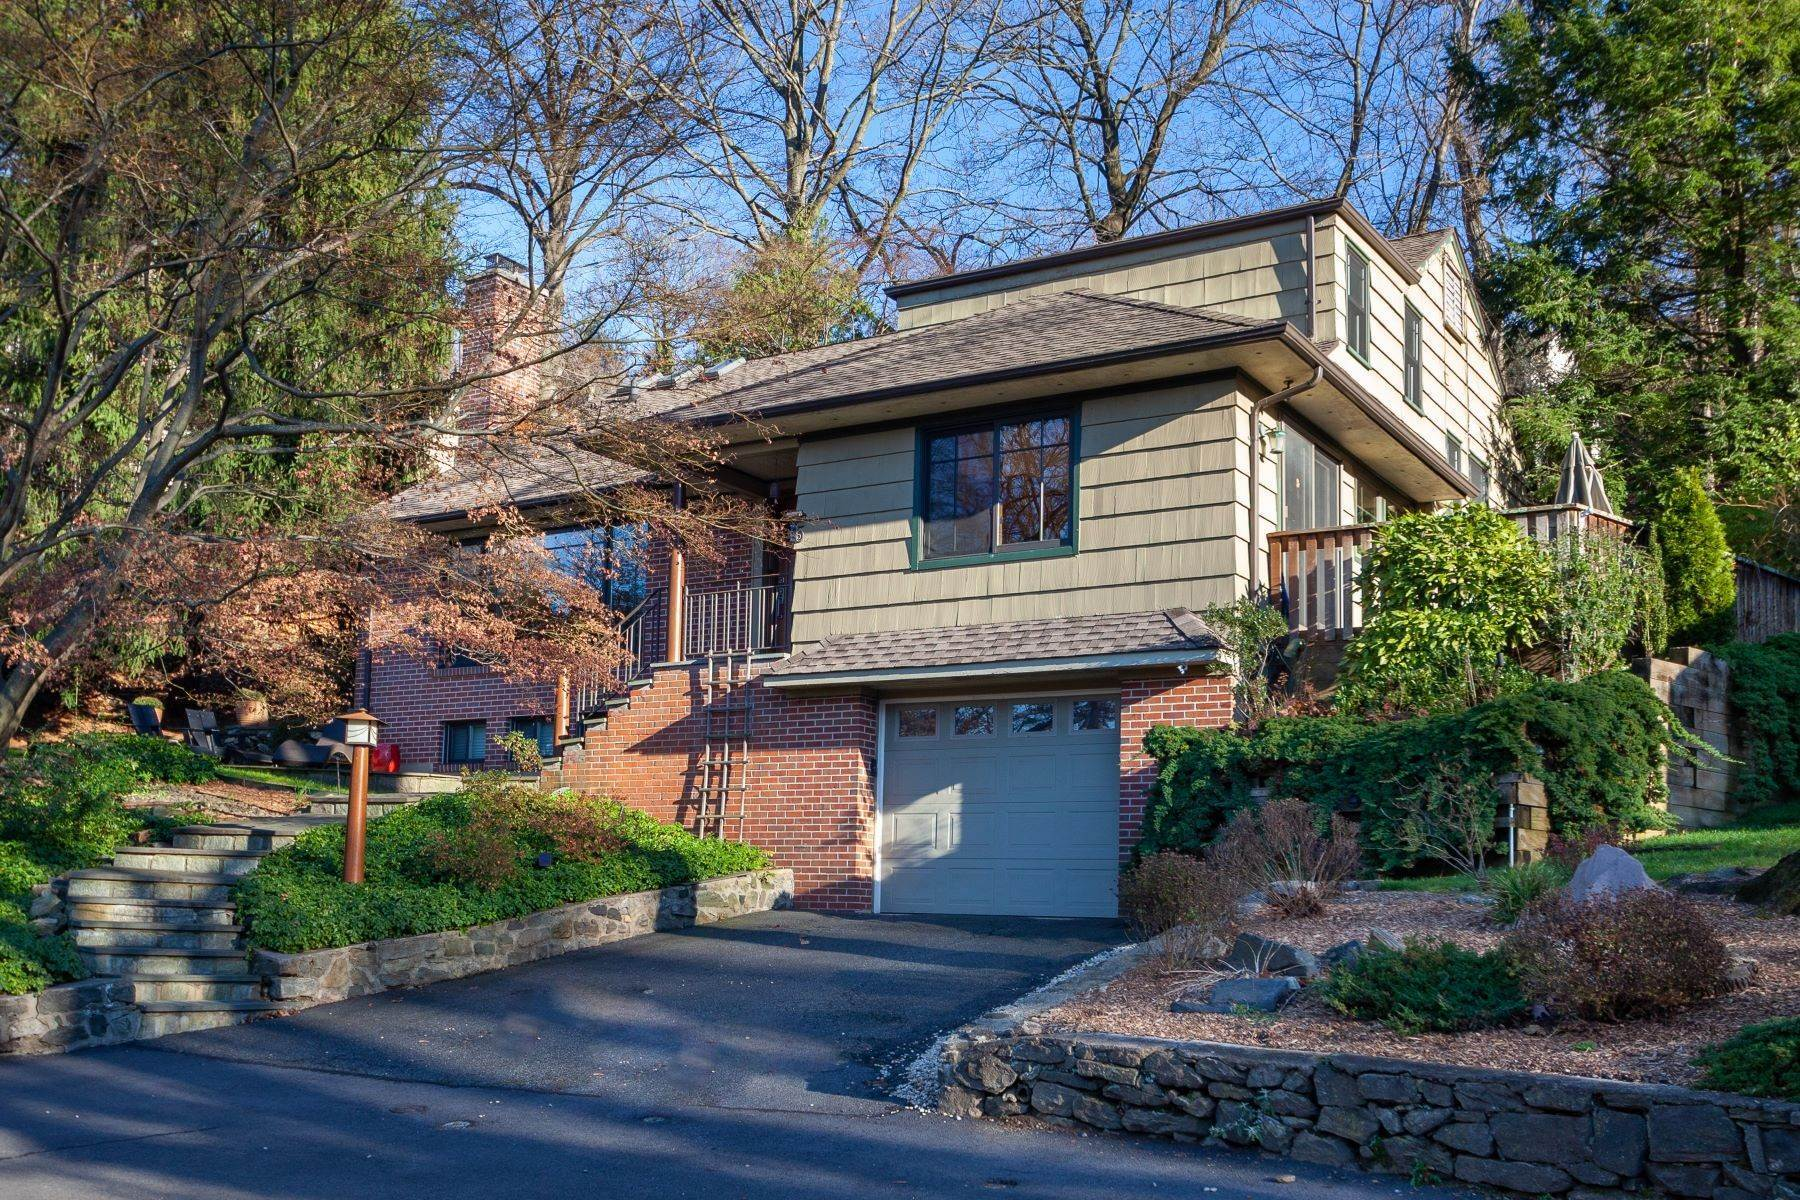 Single Family Homes for Sale at 5 Oval Court Bronxville, New York 10708 United States